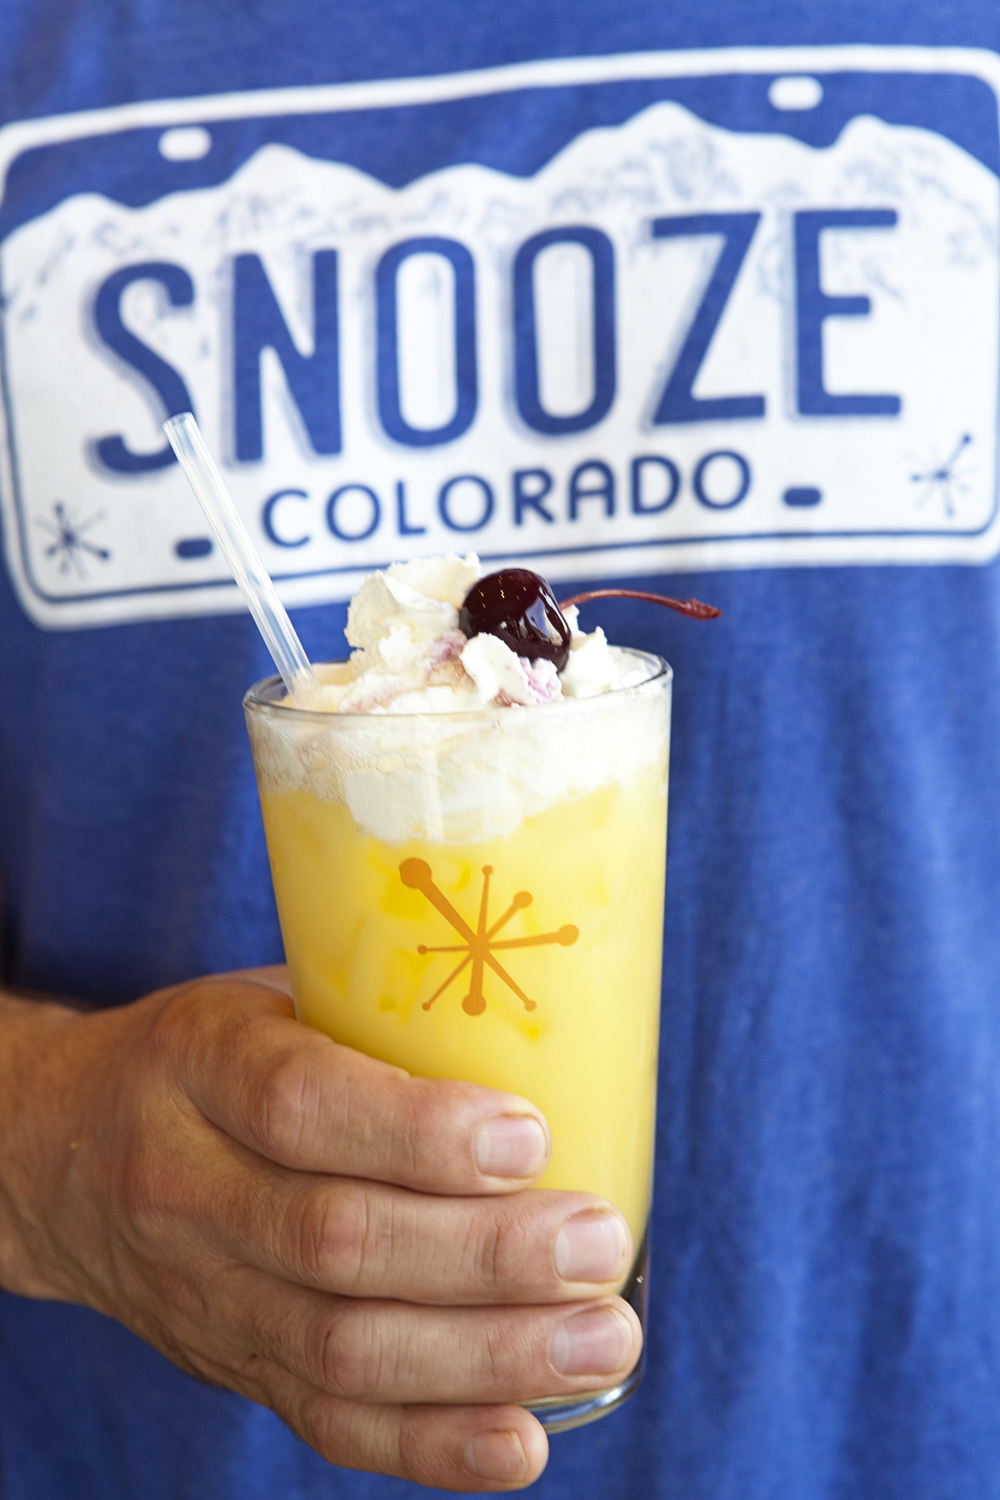 Snooze Eatery on Larimer